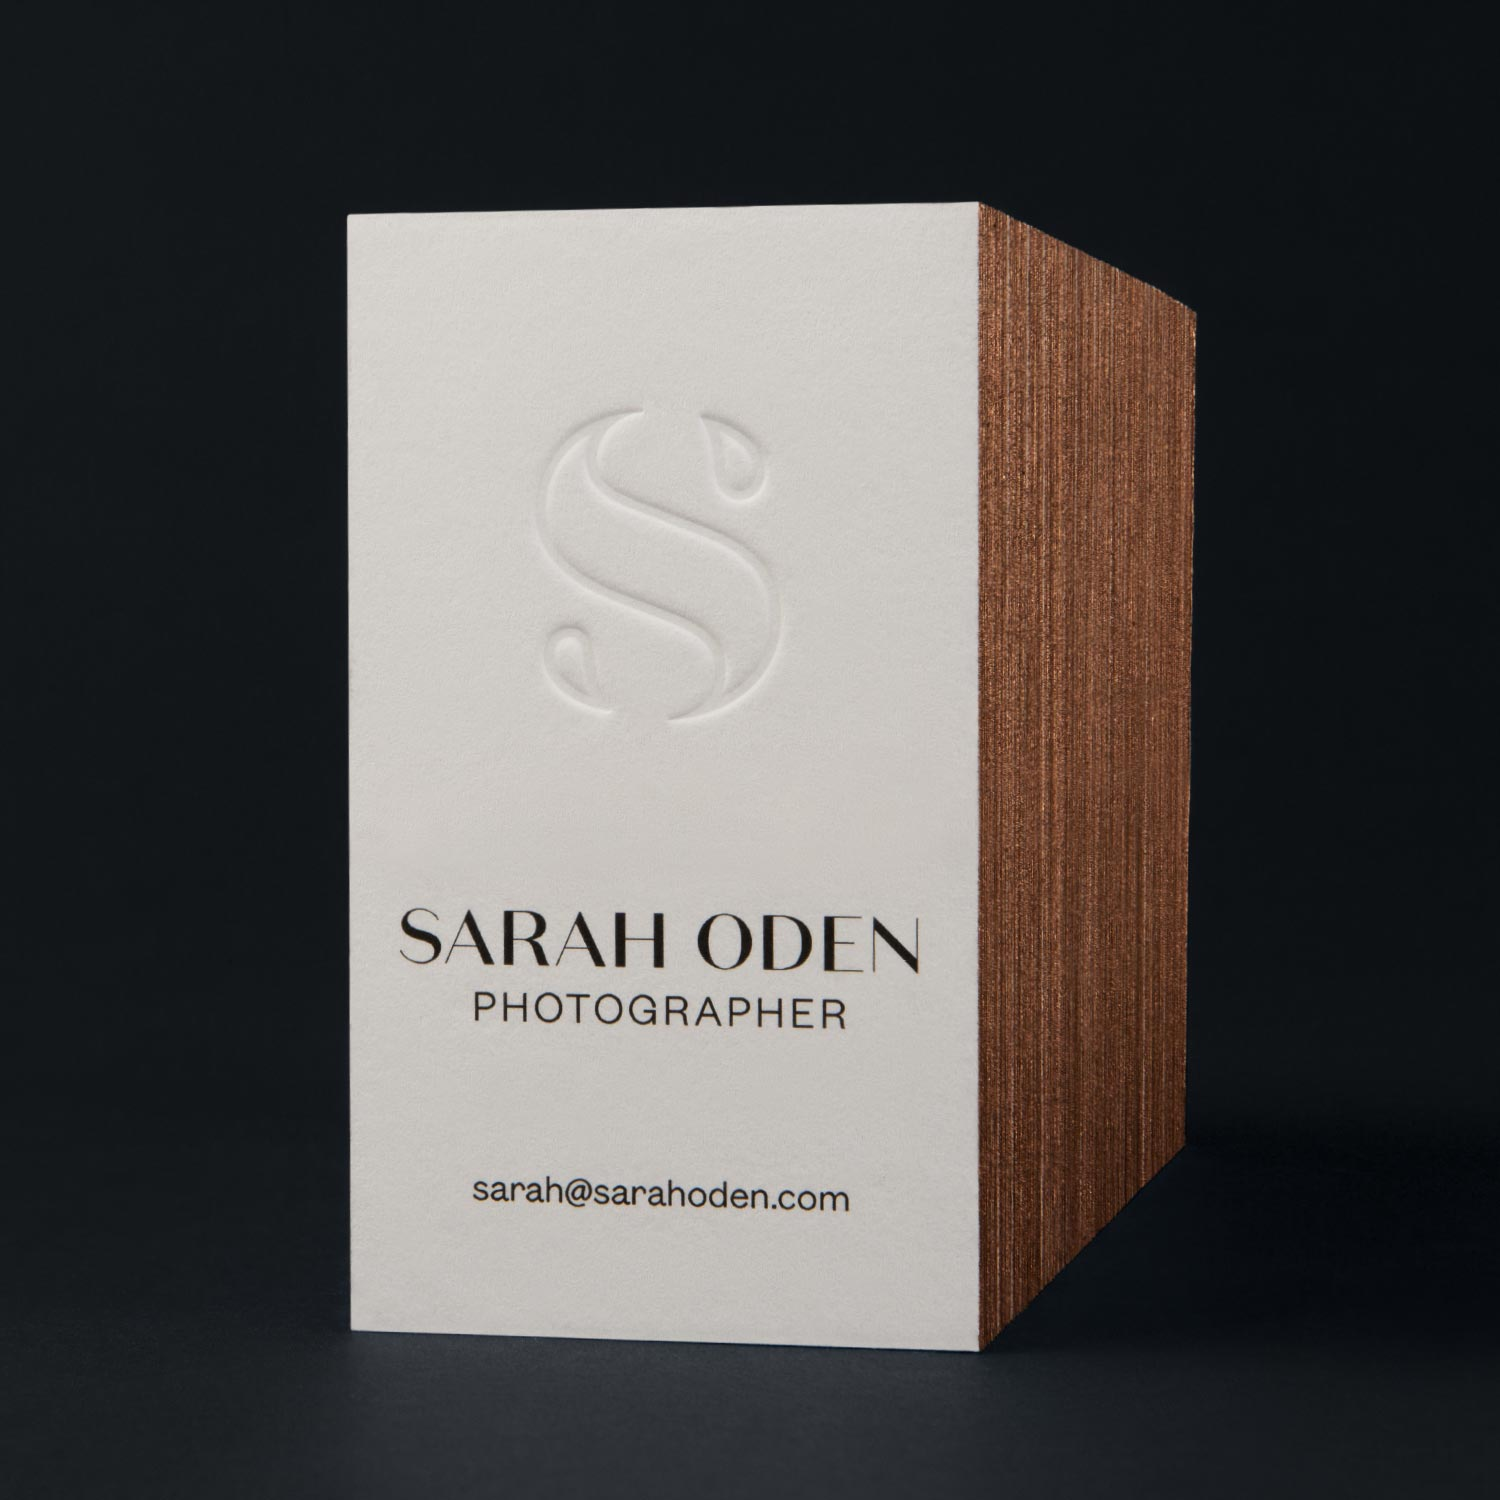 Sarah Oden Photographer luxury business cards with embossed logo and painted edges—by Hunter Oden of oden.house